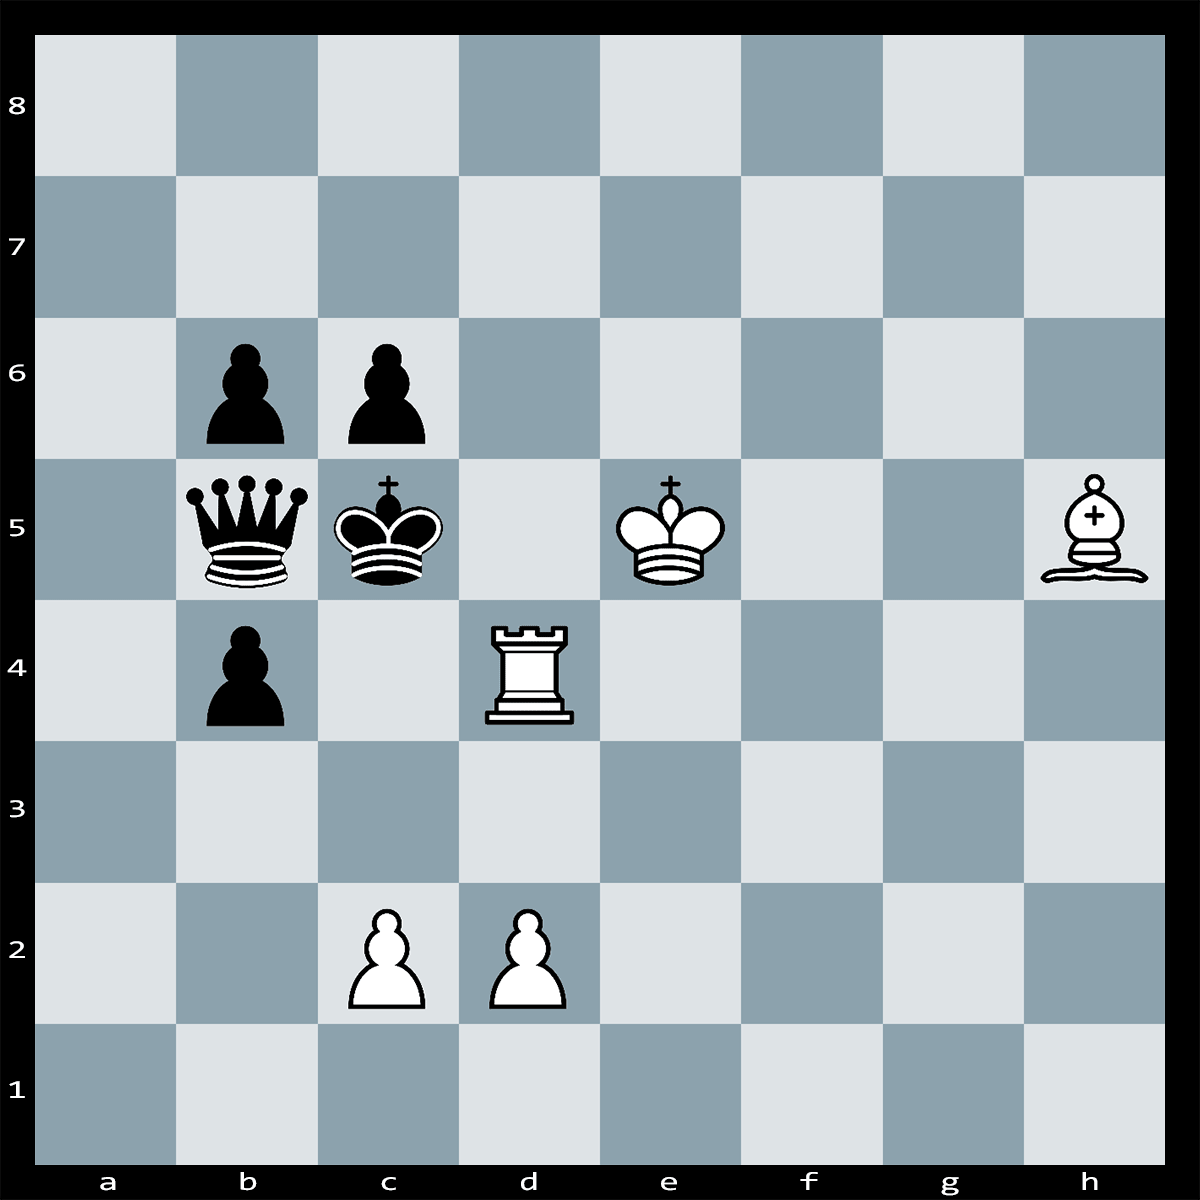 What is the Best Move for White ? Find the Best Move, White to Play and Win.